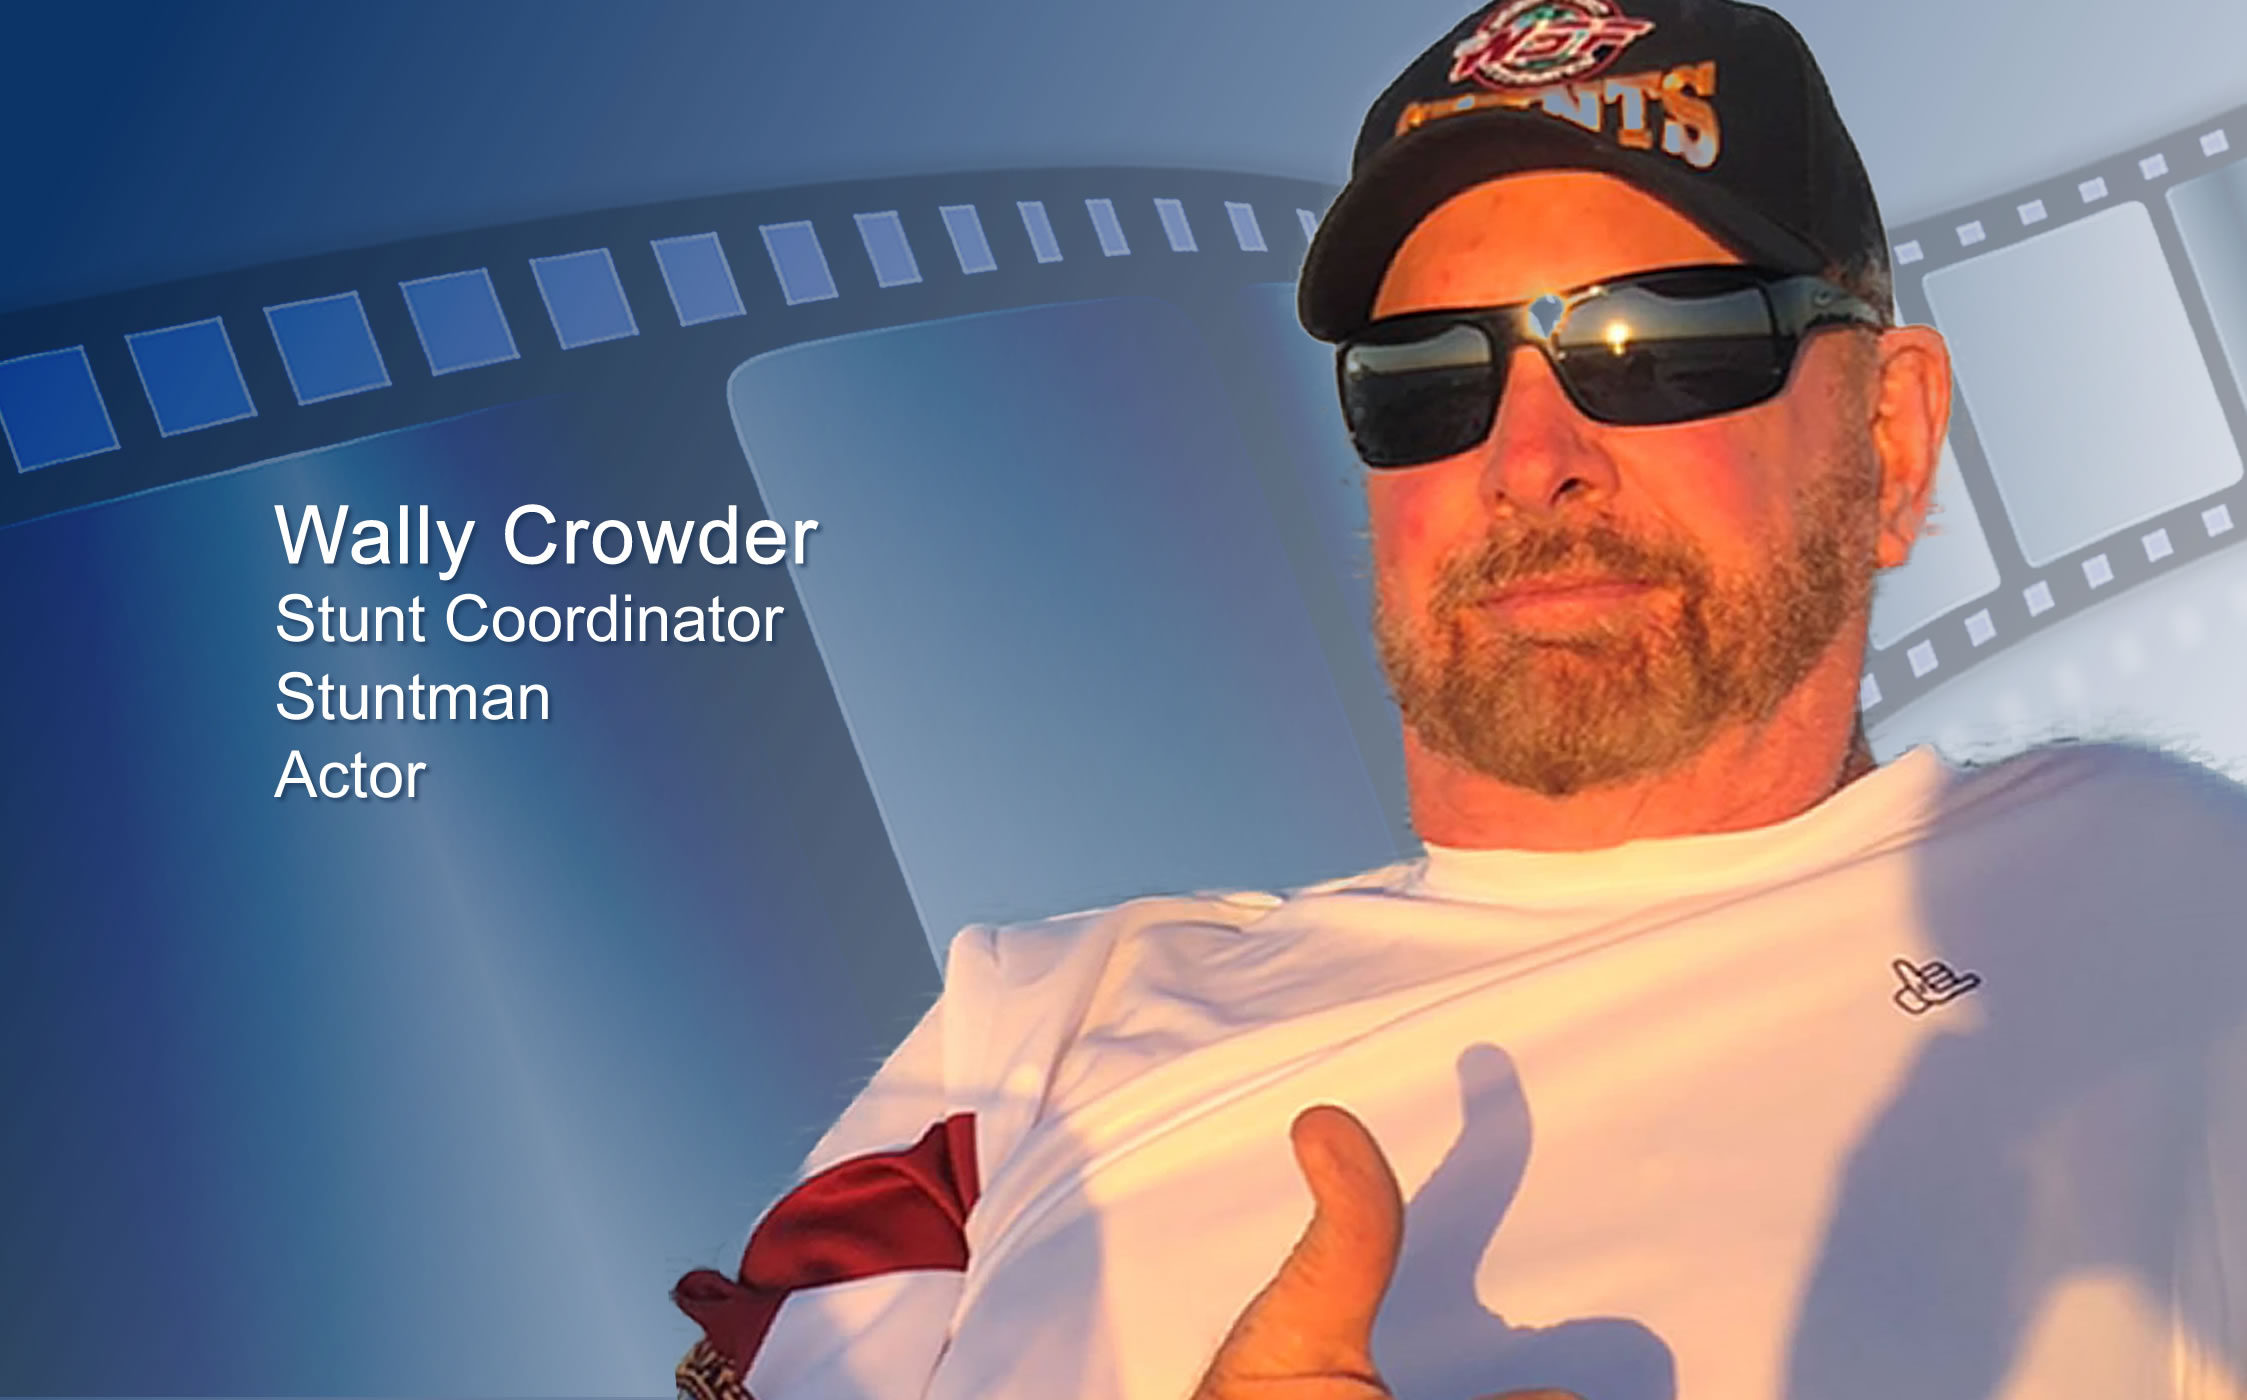 Wally Crowder